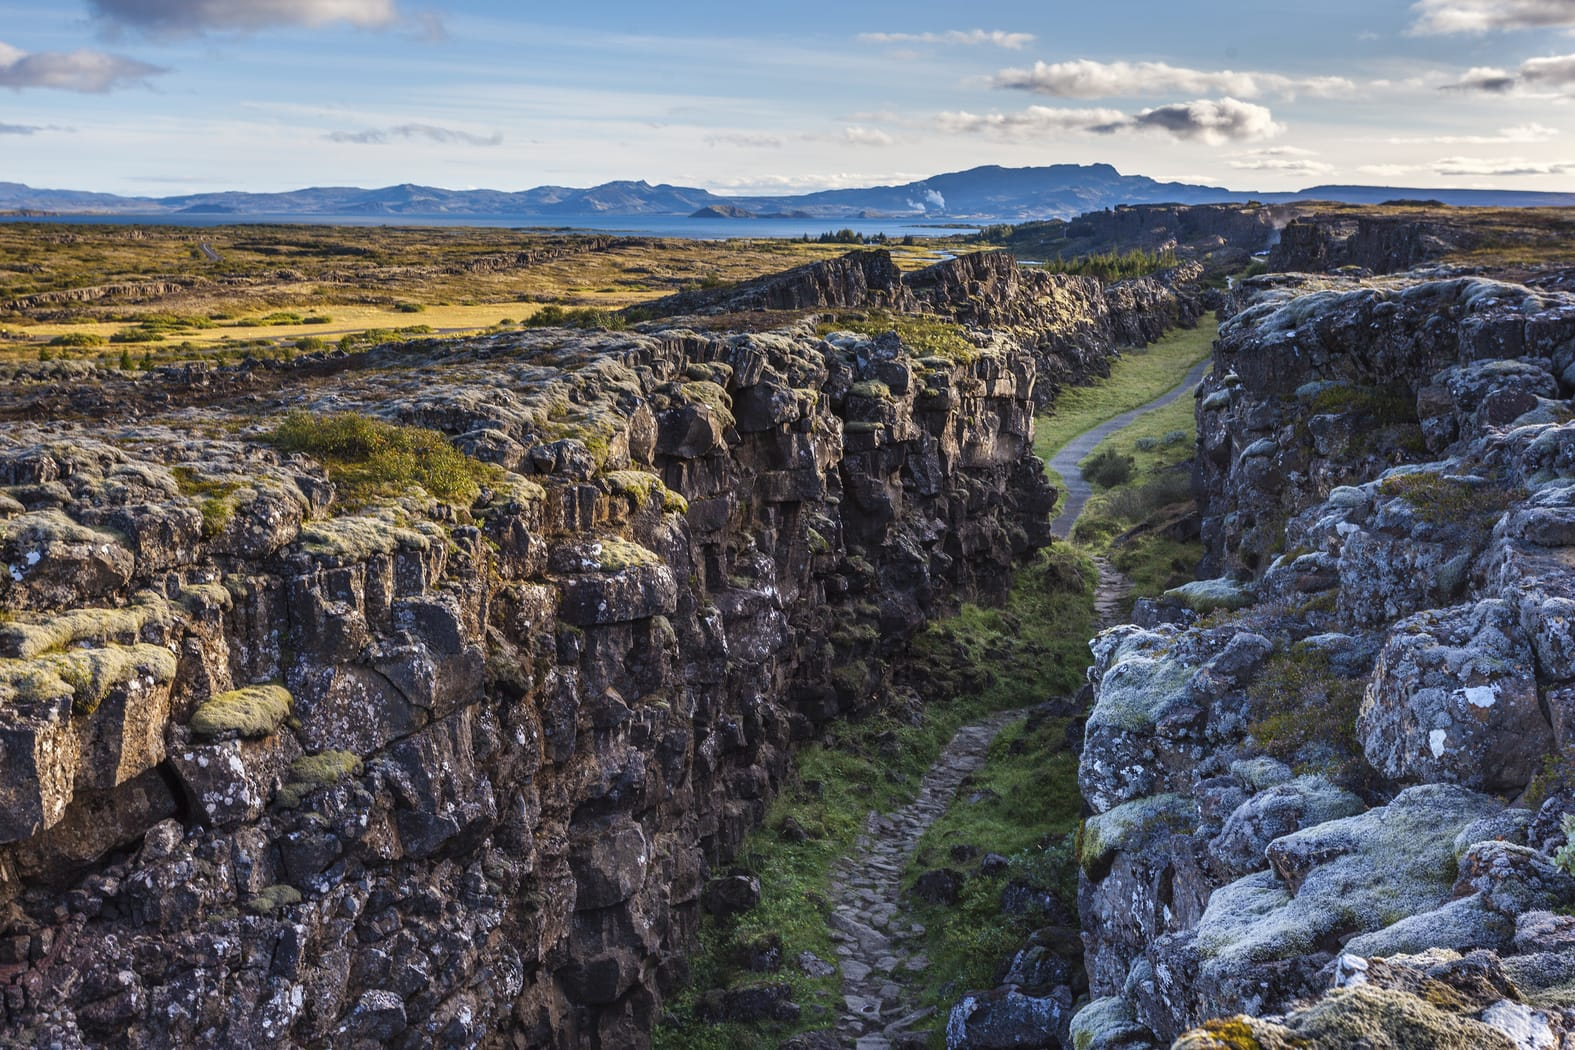 The spot where two tectonic plates meet, at Thingvellir in Iceland